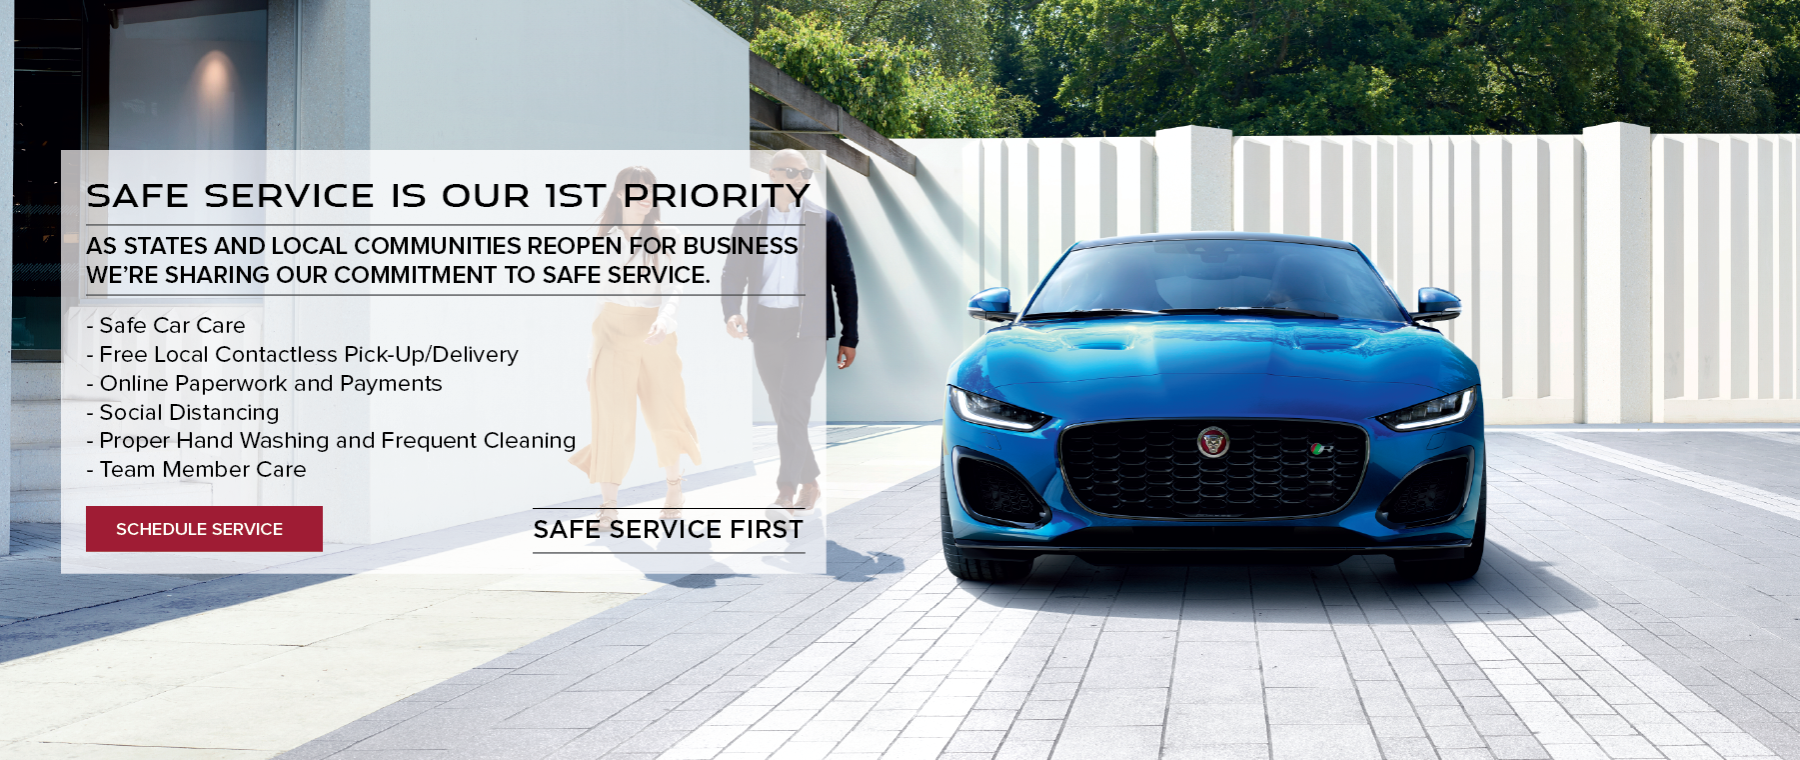 Blue 2021 F-Type in white driveway. Safe service first. Click to schedule service.